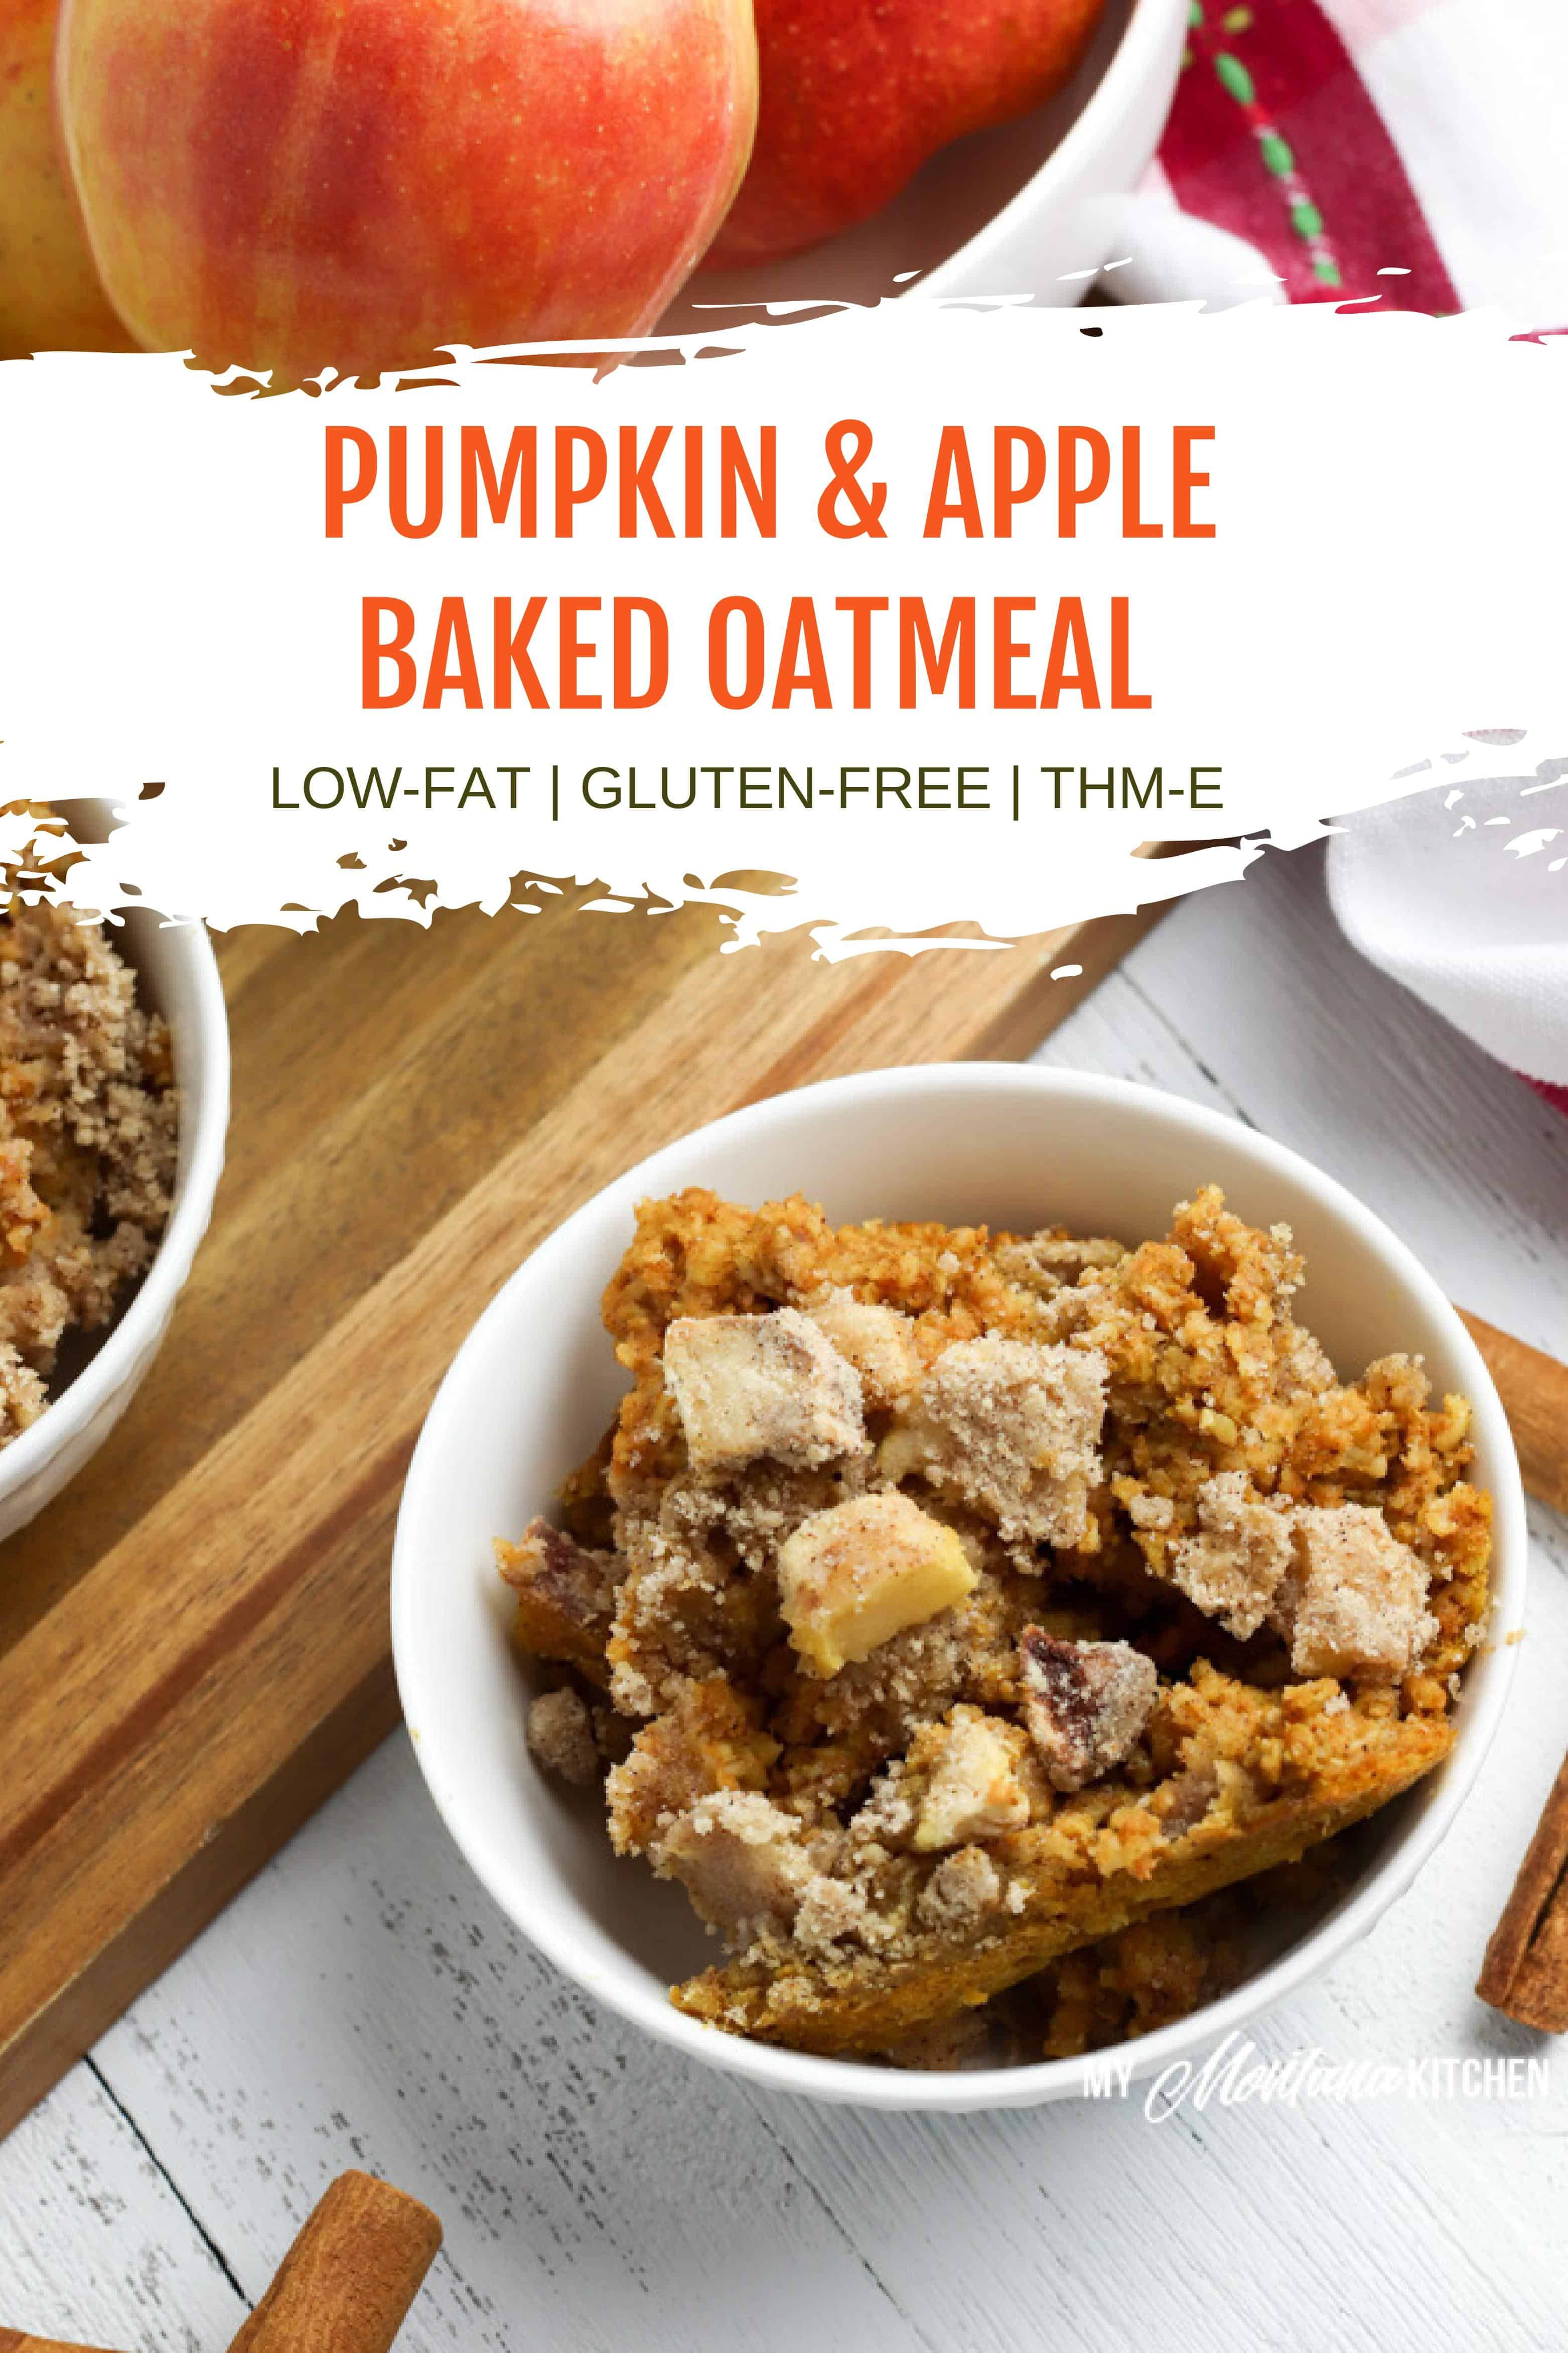 This Easy And Healthy Baked Pumpkin Oatmeal Recipe Has No Refined